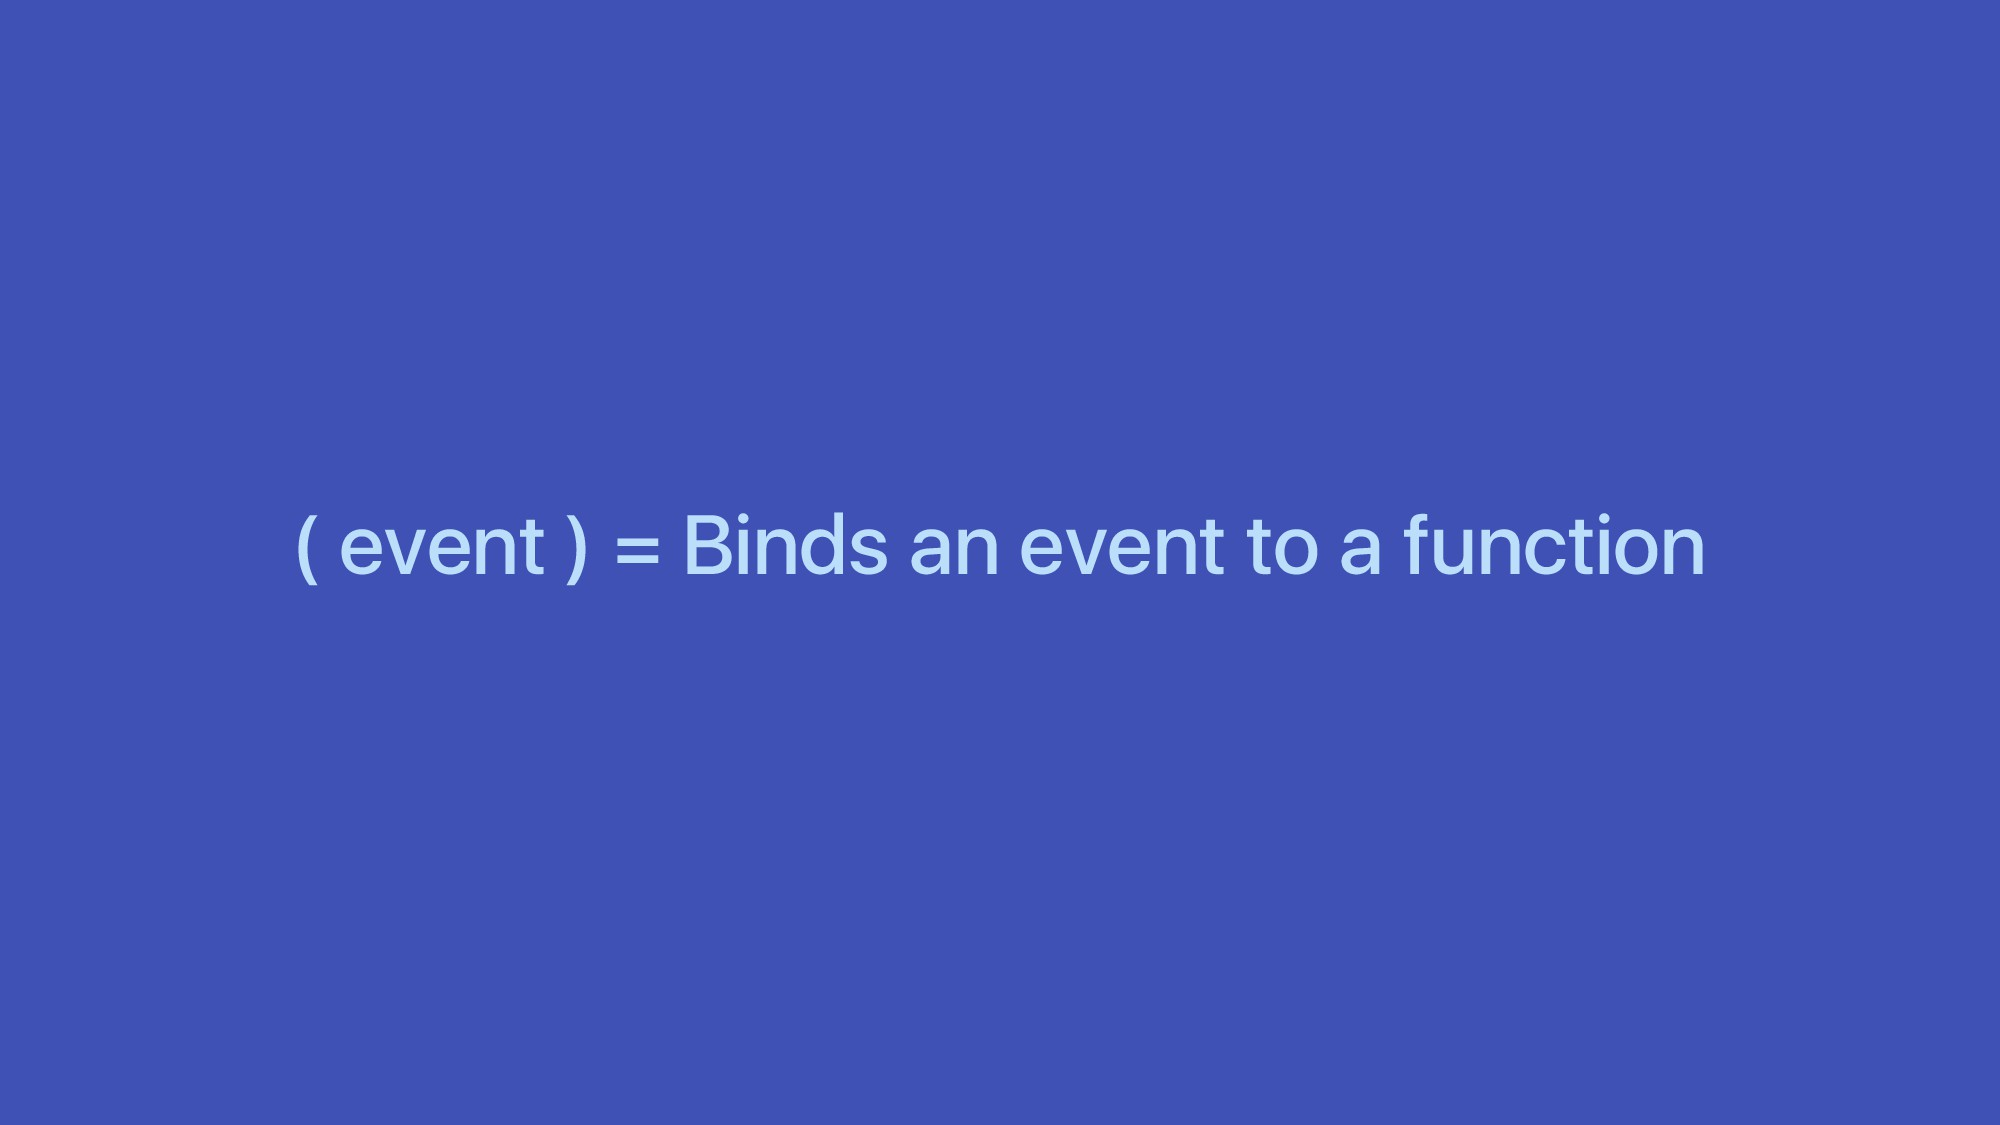 ( event ) = Binds an event to a function